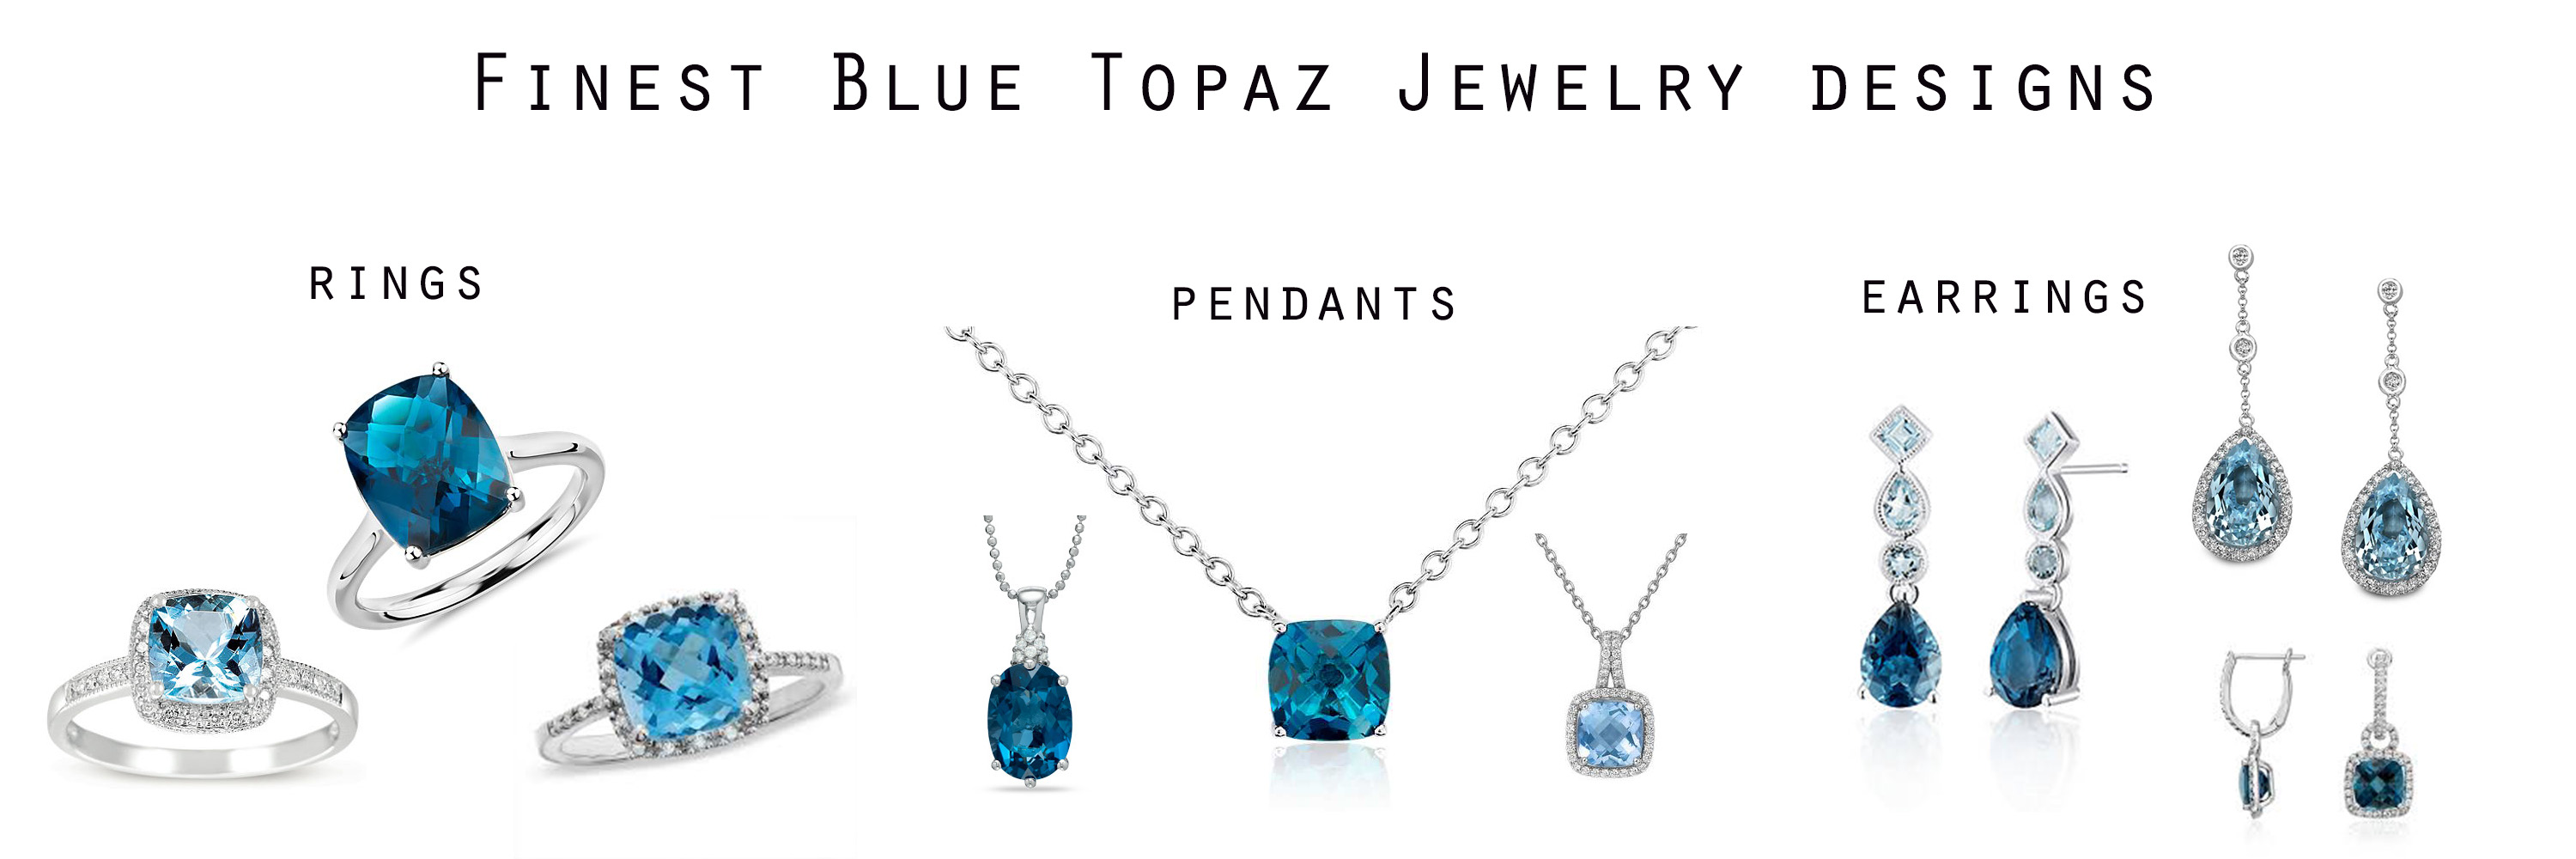 blue topaz jewelry designs